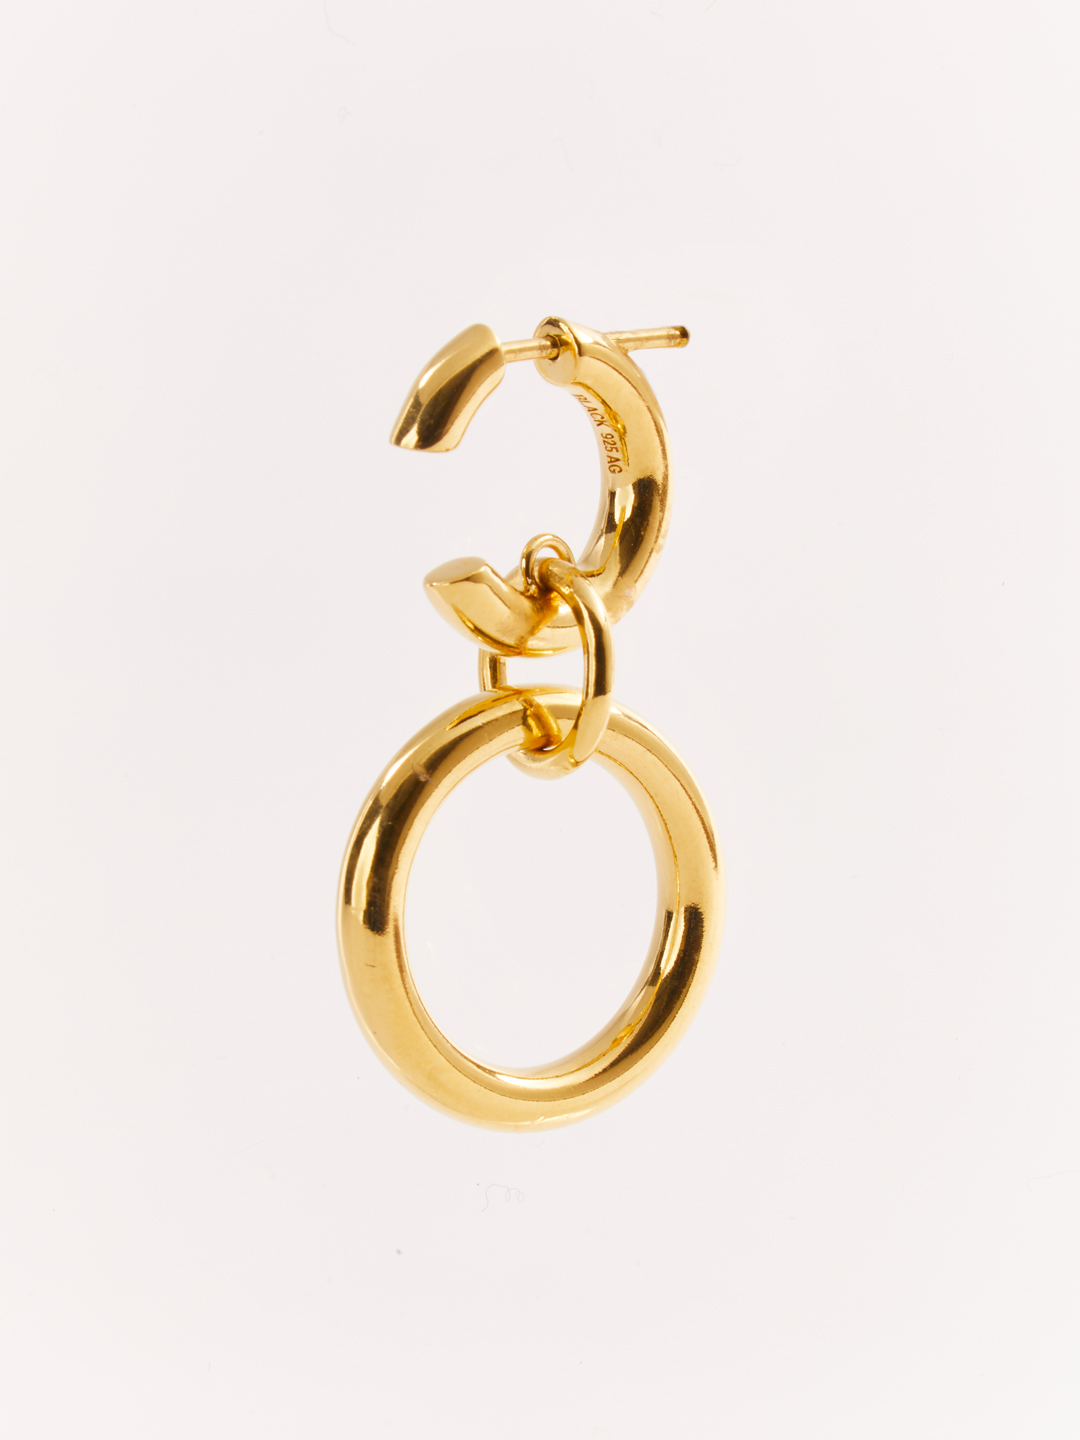 Dogma Pierced Earring - Gold High Polish